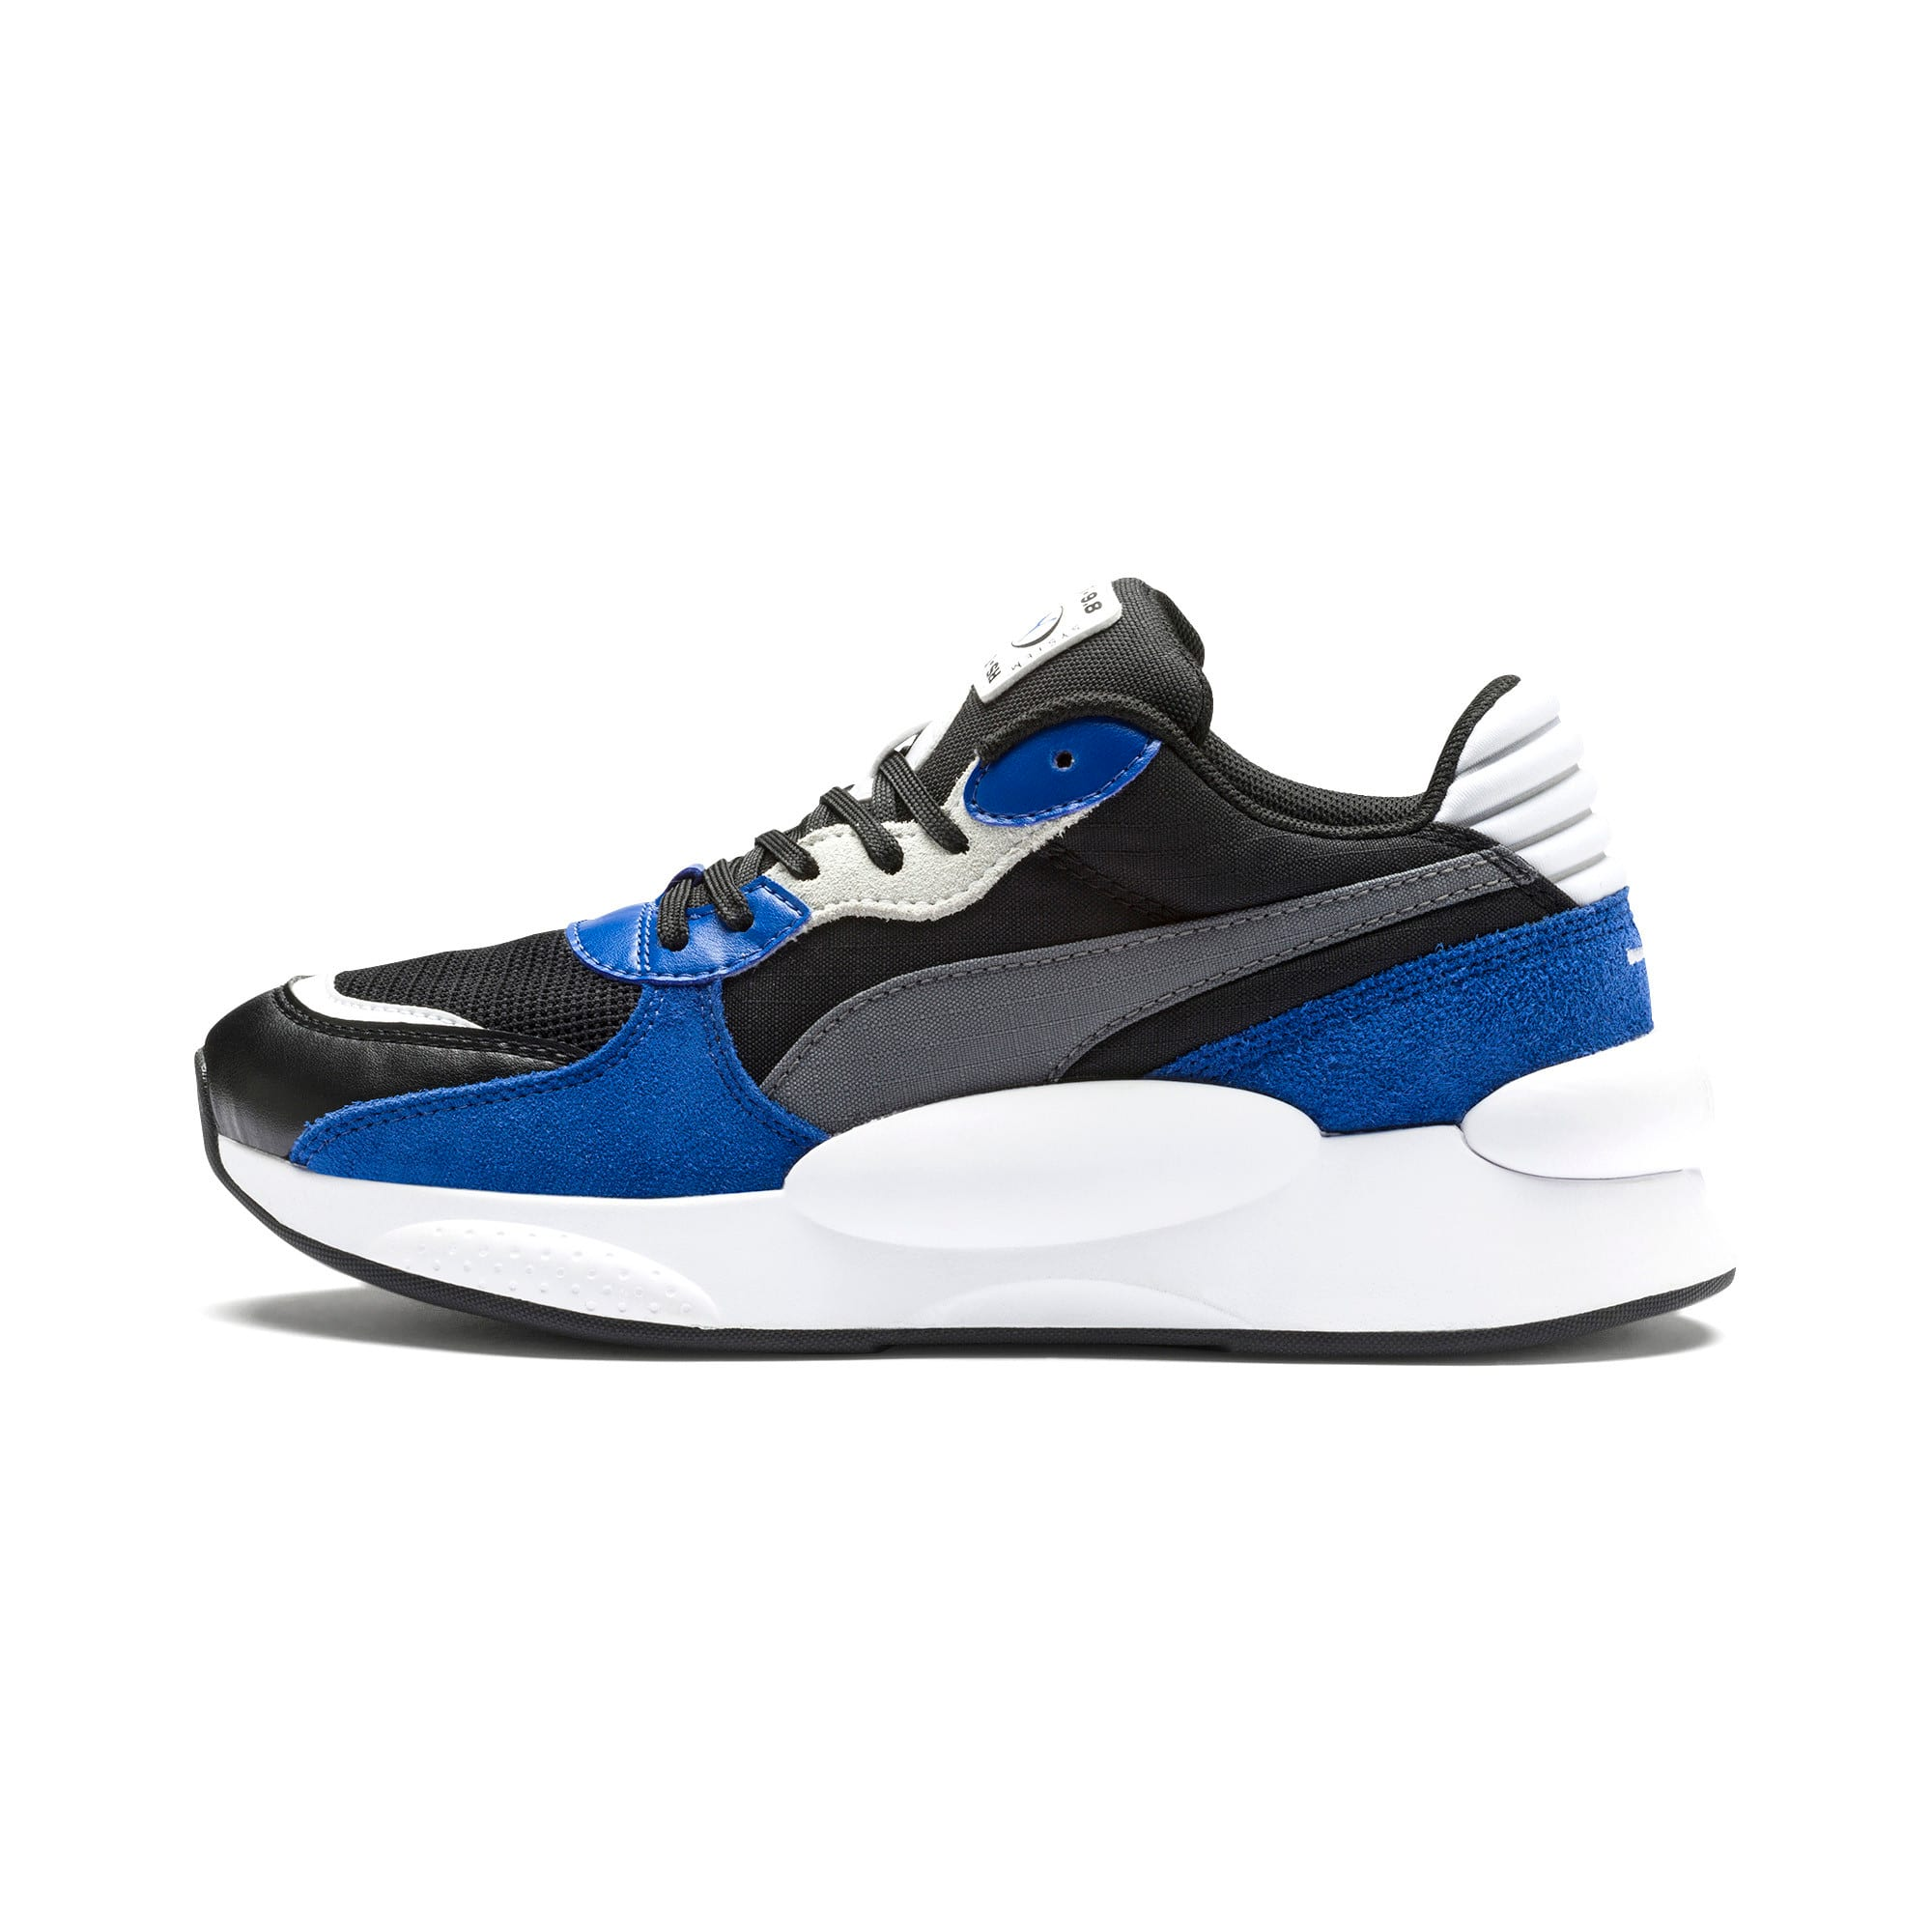 Thumbnail 1 of RS 9.8 Space Youth Trainers, Puma Black-Galaxy Blue, medium